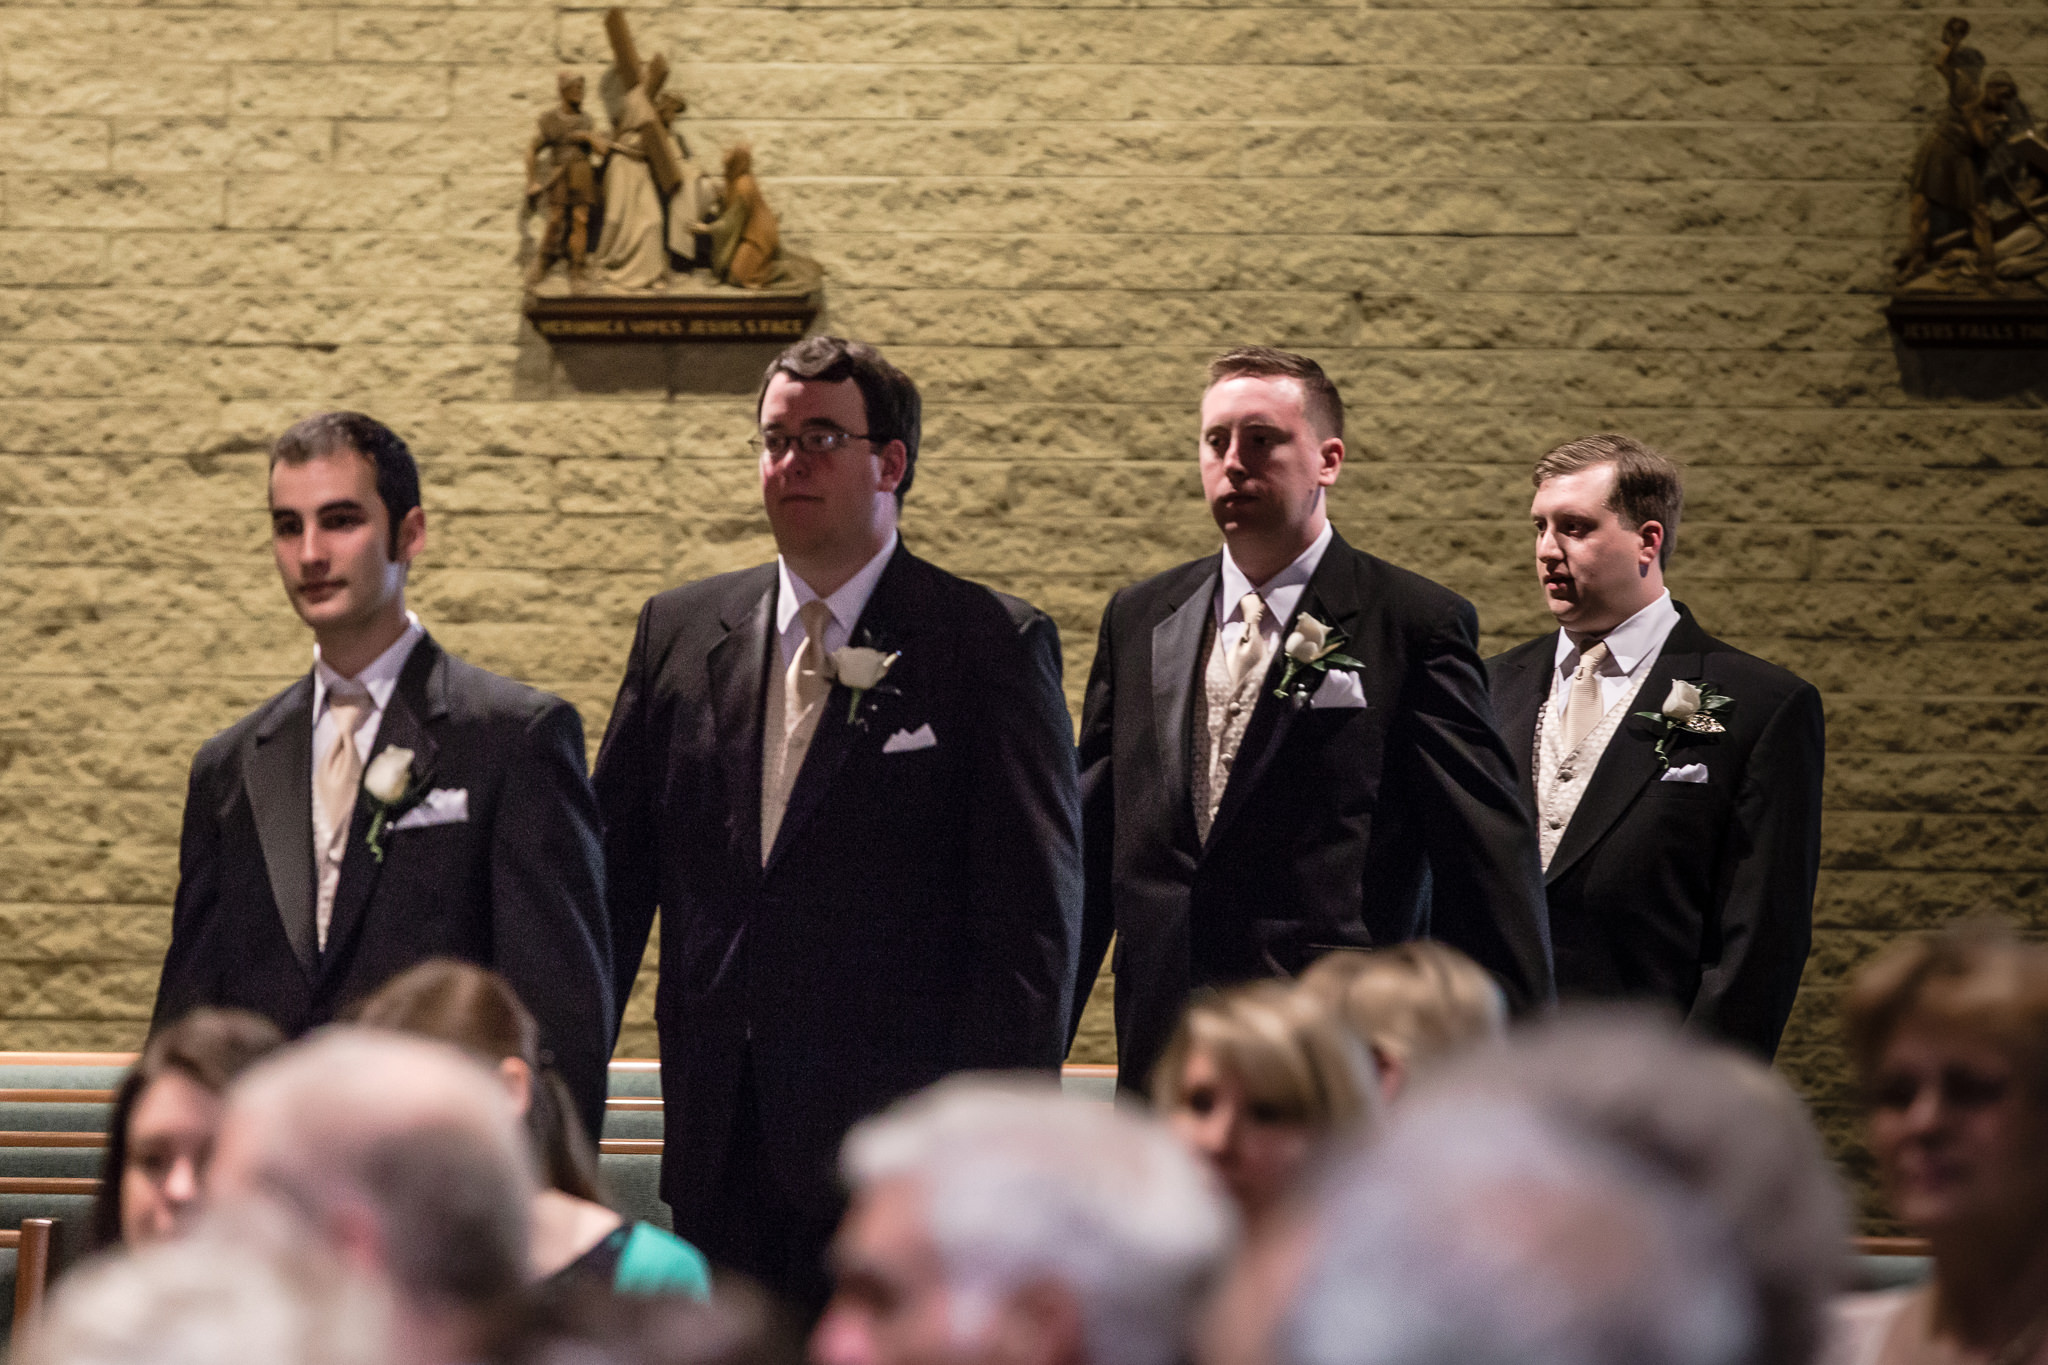 Groom & groomsmen approach altar for wedding ceremony at St. John Neumann Church in Pittsburgh PA